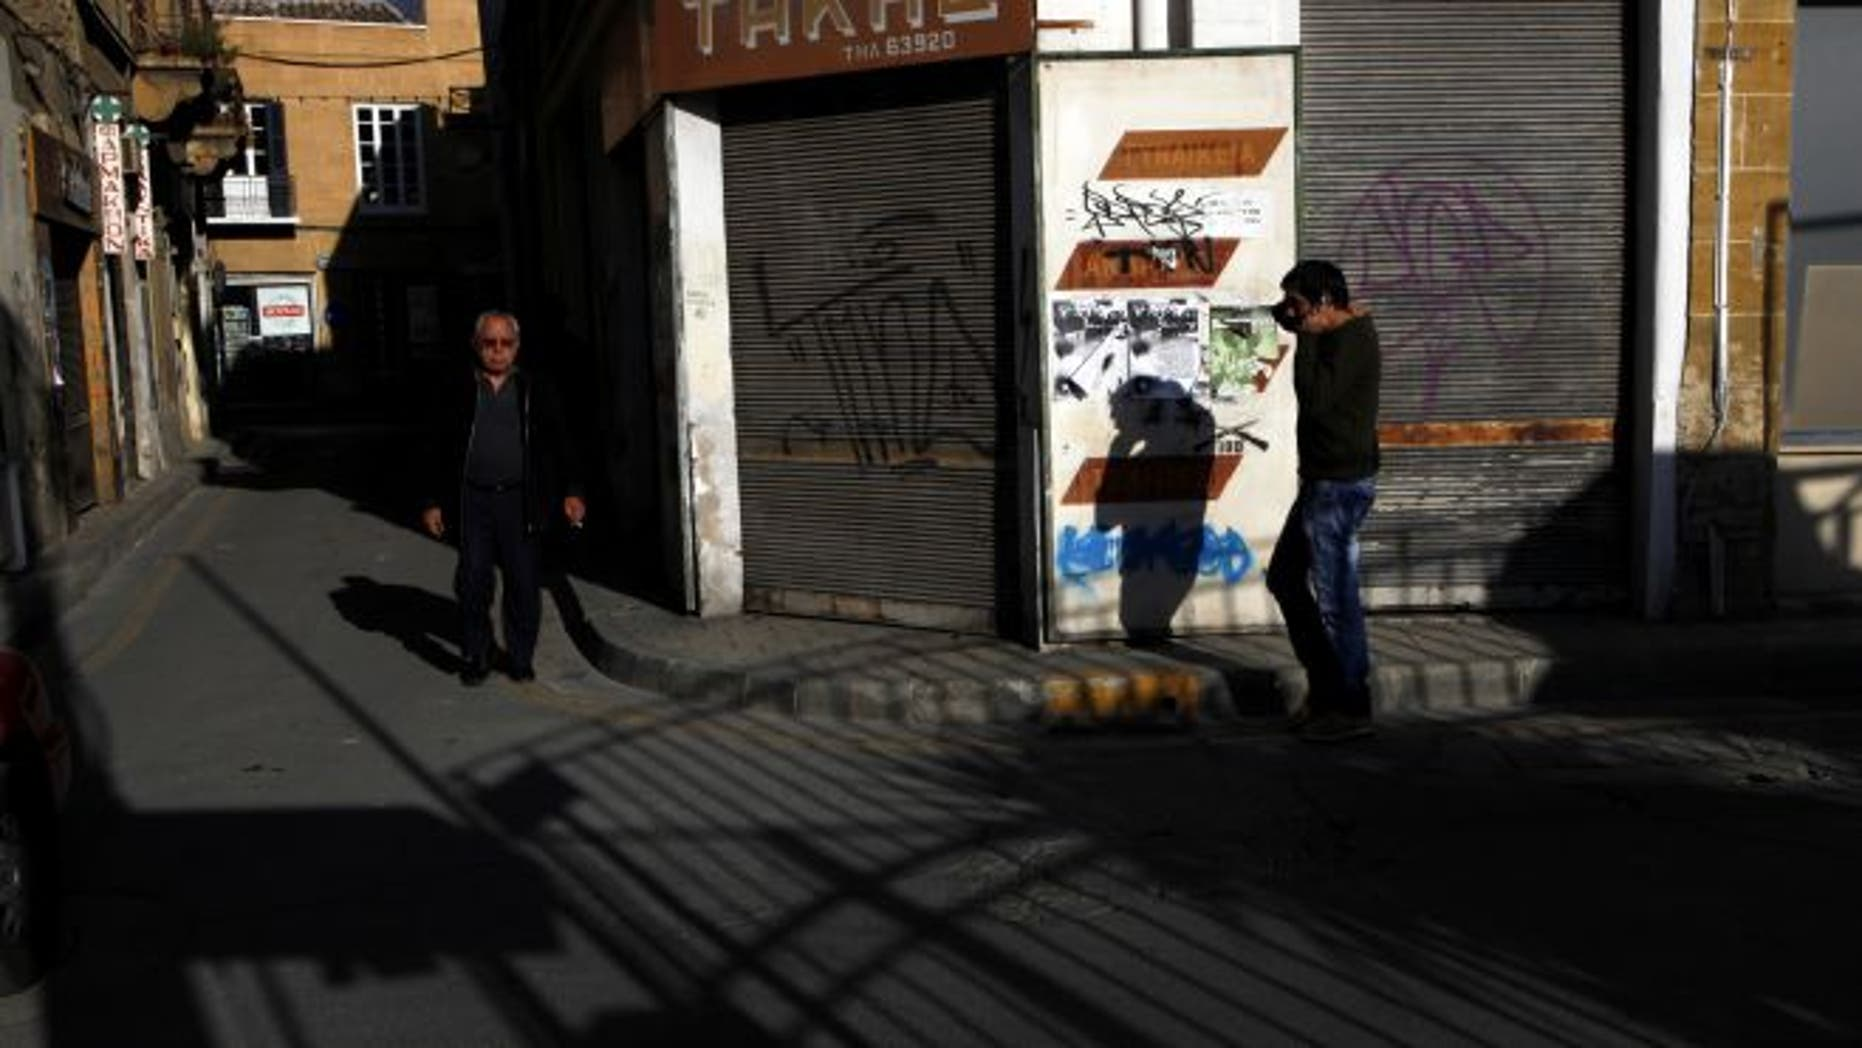 March 23, 2013: People walk at the old city of capital Nicosia, Cyprus.